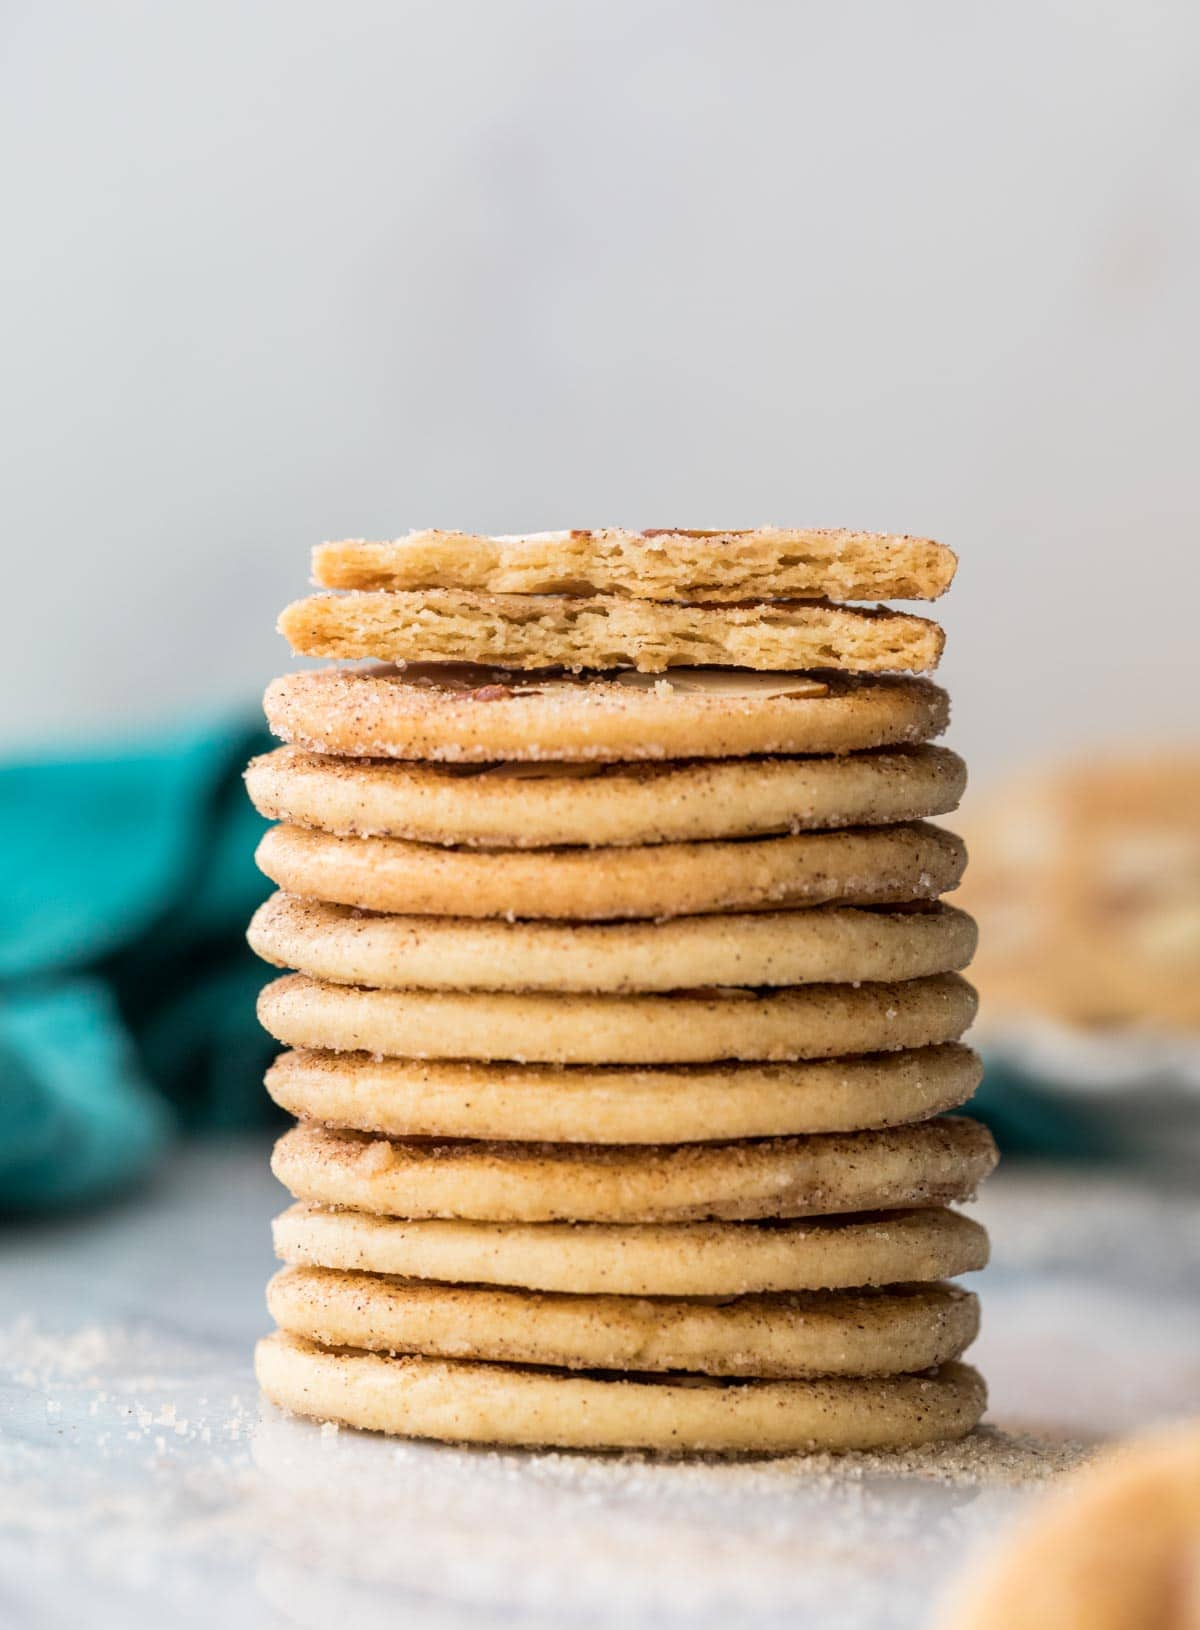 Stack of sand dollar cookies with cookie broken in half on top, showing that they are thin, crispy, and flat cookies